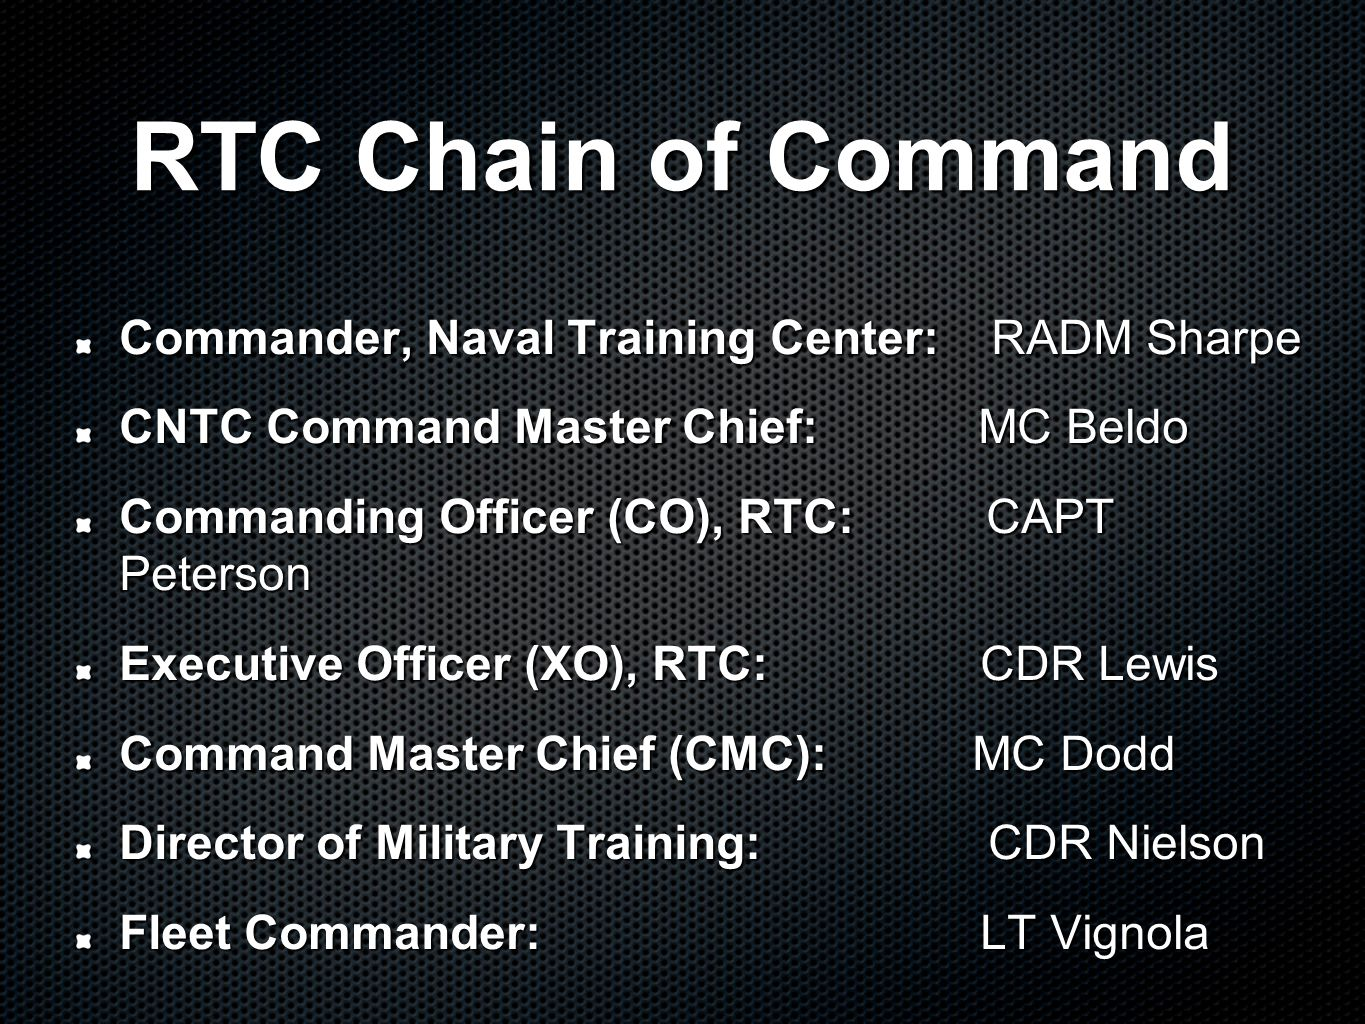 RTC Chain of Command Commander, Naval Training Center: RADM Sharpe CNTC Command Master Chief: MC Beldo Commanding Officer (CO), RTC: CAPT Peterson Exe